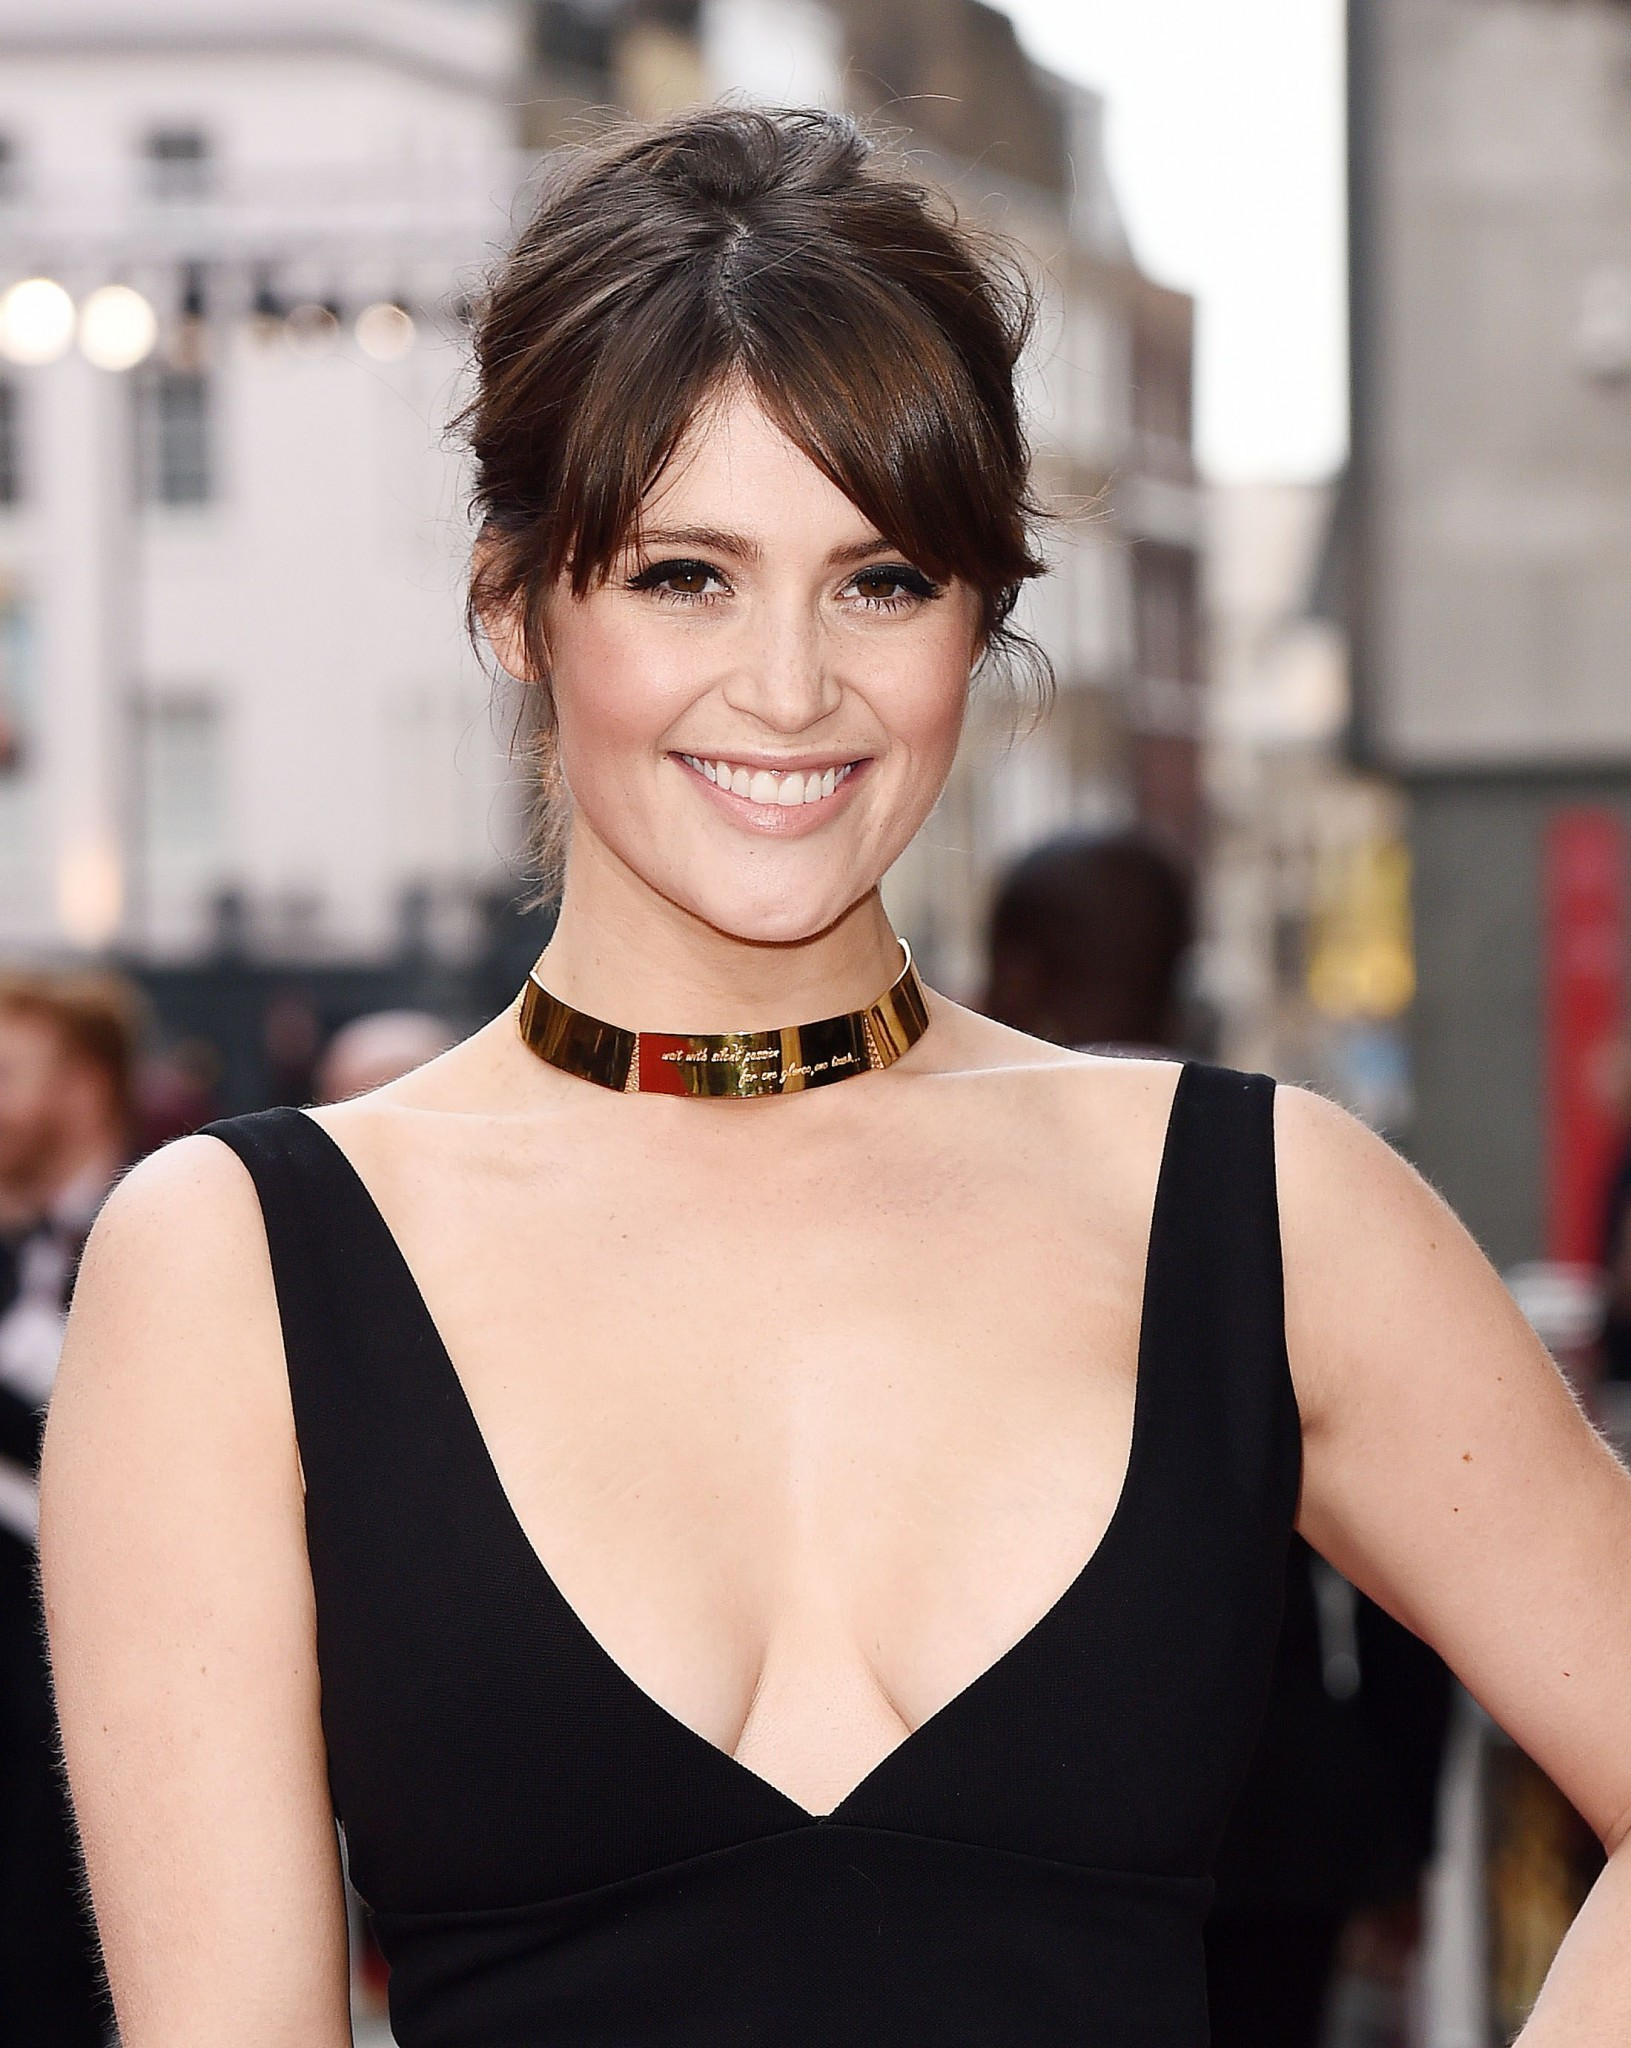 gemma-arterton-cleavage-at-the-olivier-awards-in-london-2